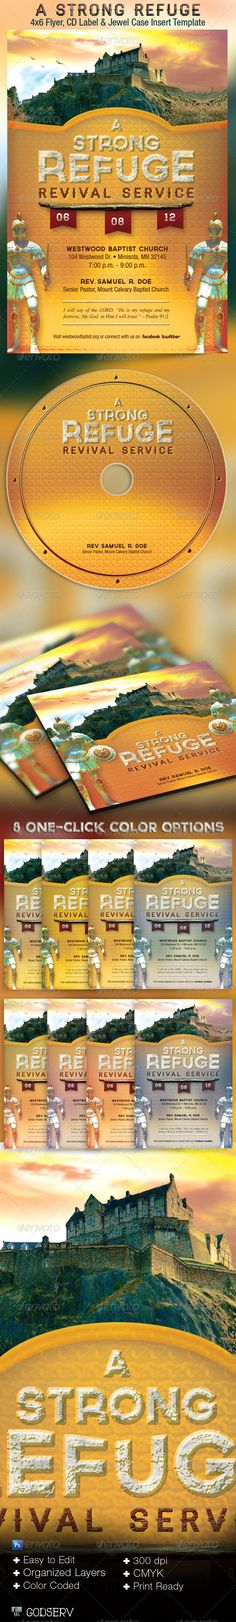 Joy Of The Lord Church Flyer And Cd Template  Discover More Ideas